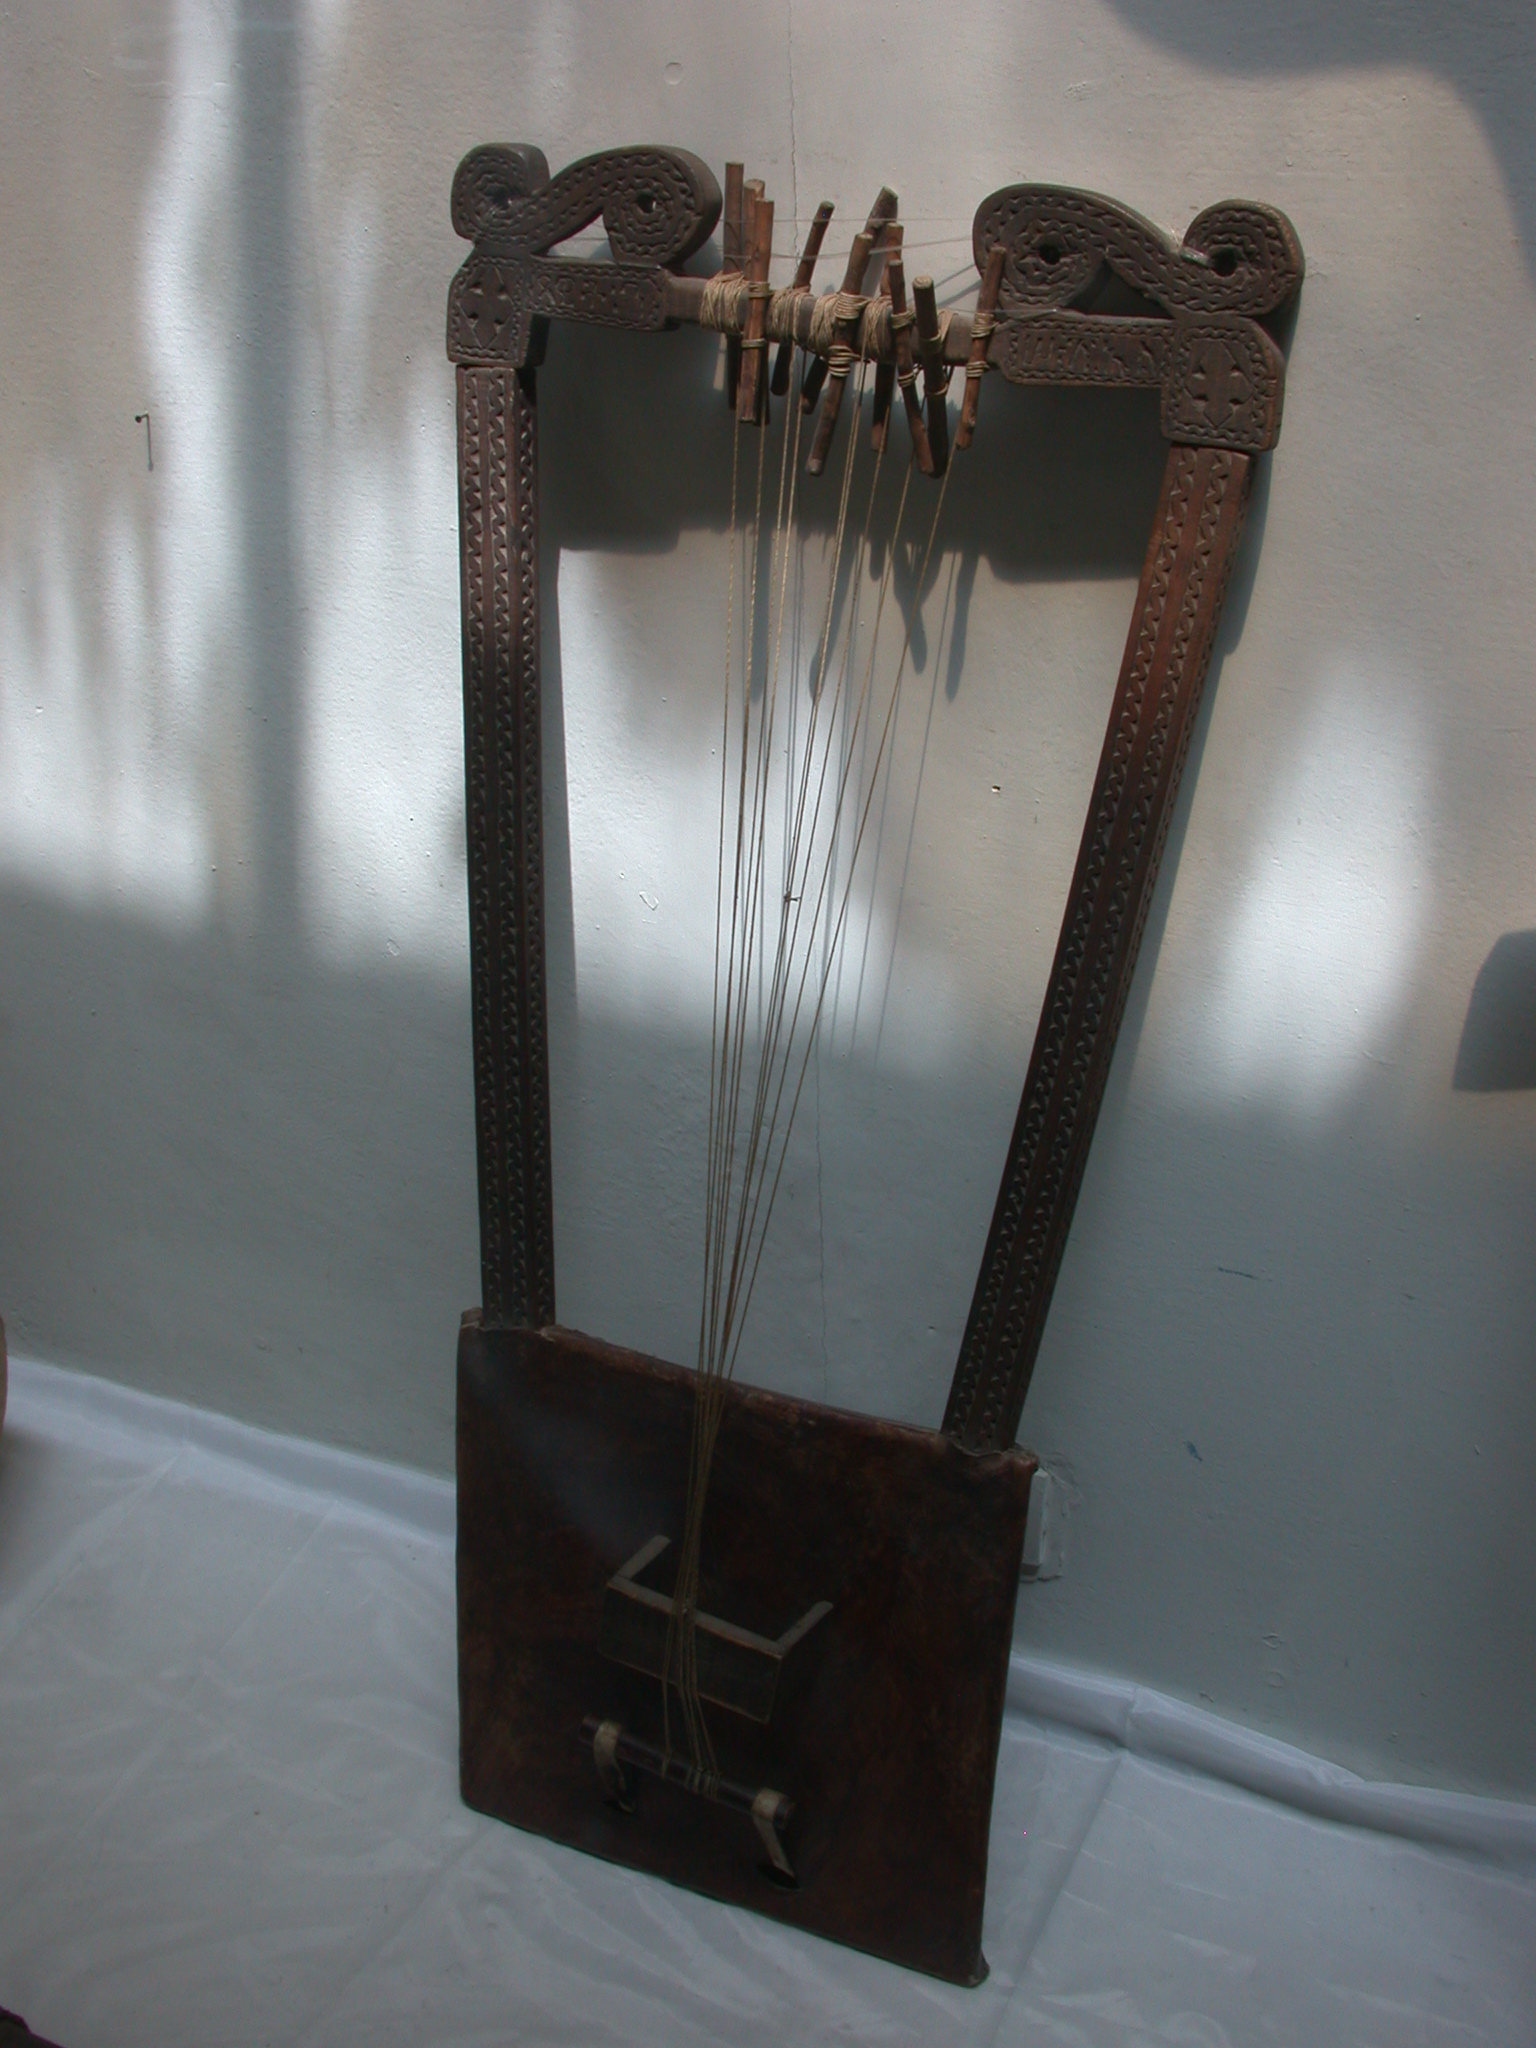 Eccessiastical String Instrument, National Museum, Addis Ababa, Ethiopia